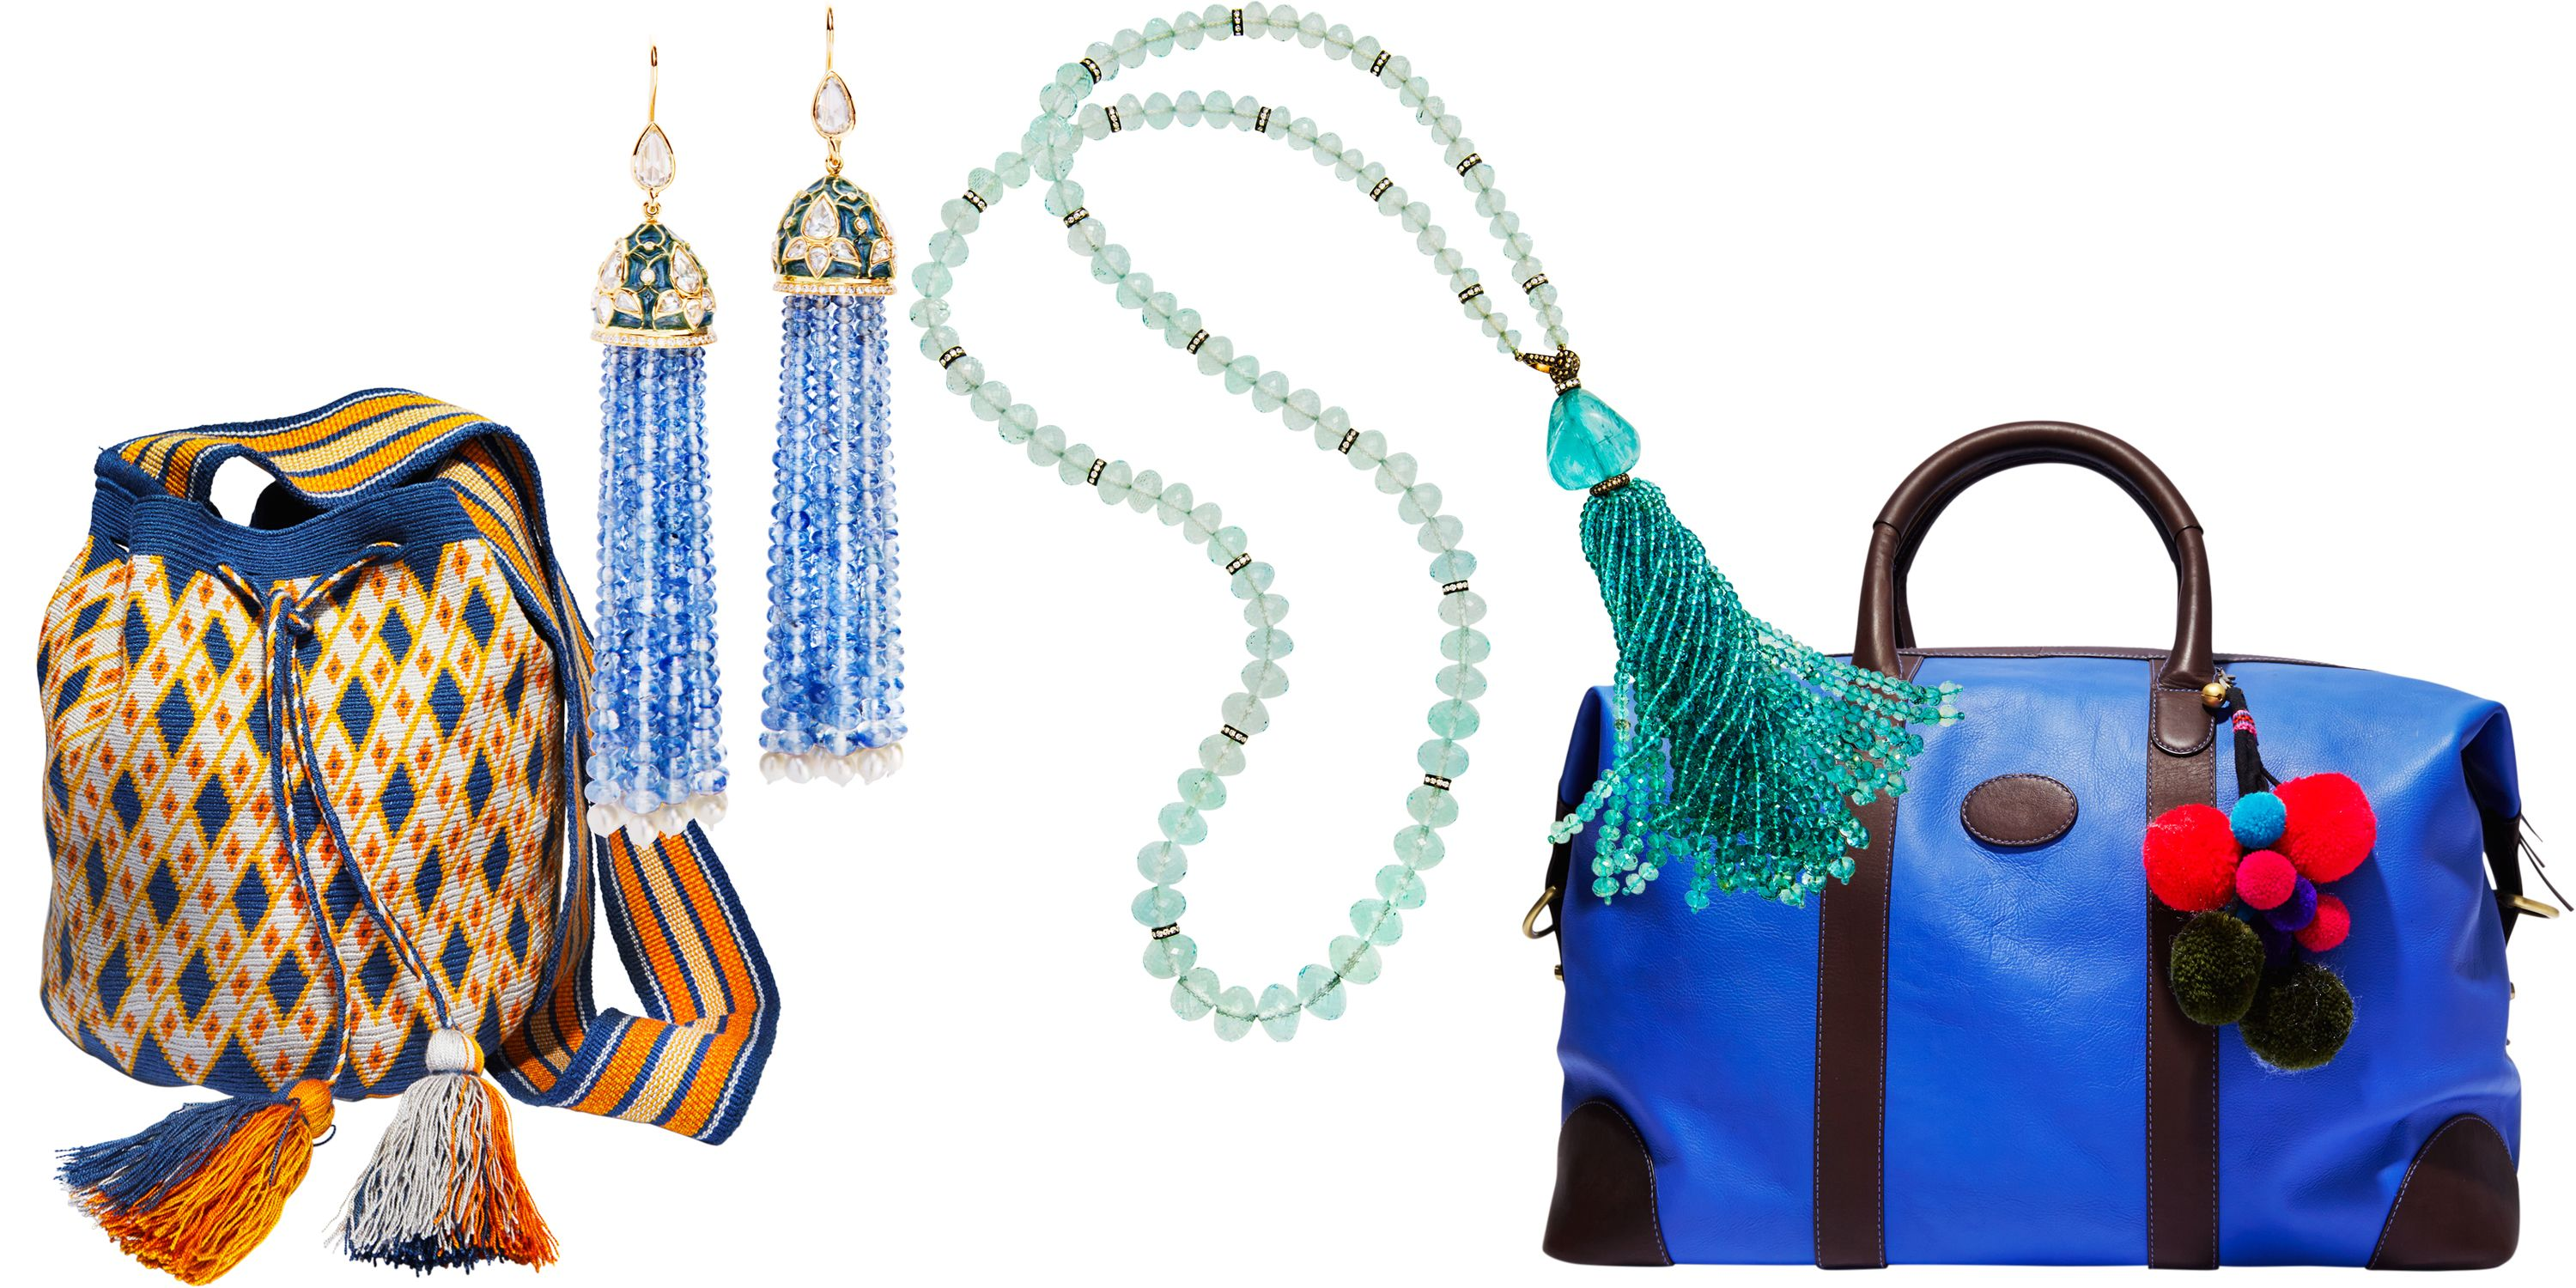 "<p>""My Debonnaire luggage—with their all-important luggage tags—to bring back jewelry finds from the Gem Palace.""</p><p><strong>Miss Mochila</strong> bag, $325, 888-774-2424; <strong>Munnu the Gem Palace</strong> earrings, price upon request, 212-861-0808; <strong>Munnu the Gem Palace </strong>necklace, price upon request, 212-861-0808; <strong>Debonnaire</strong> luggage, $750, <a href=""http://www.debonnaire.com/"" target=""_blank"">debonnaire.com</a>. <span class=""redactor-invisible-space""></span></p>"